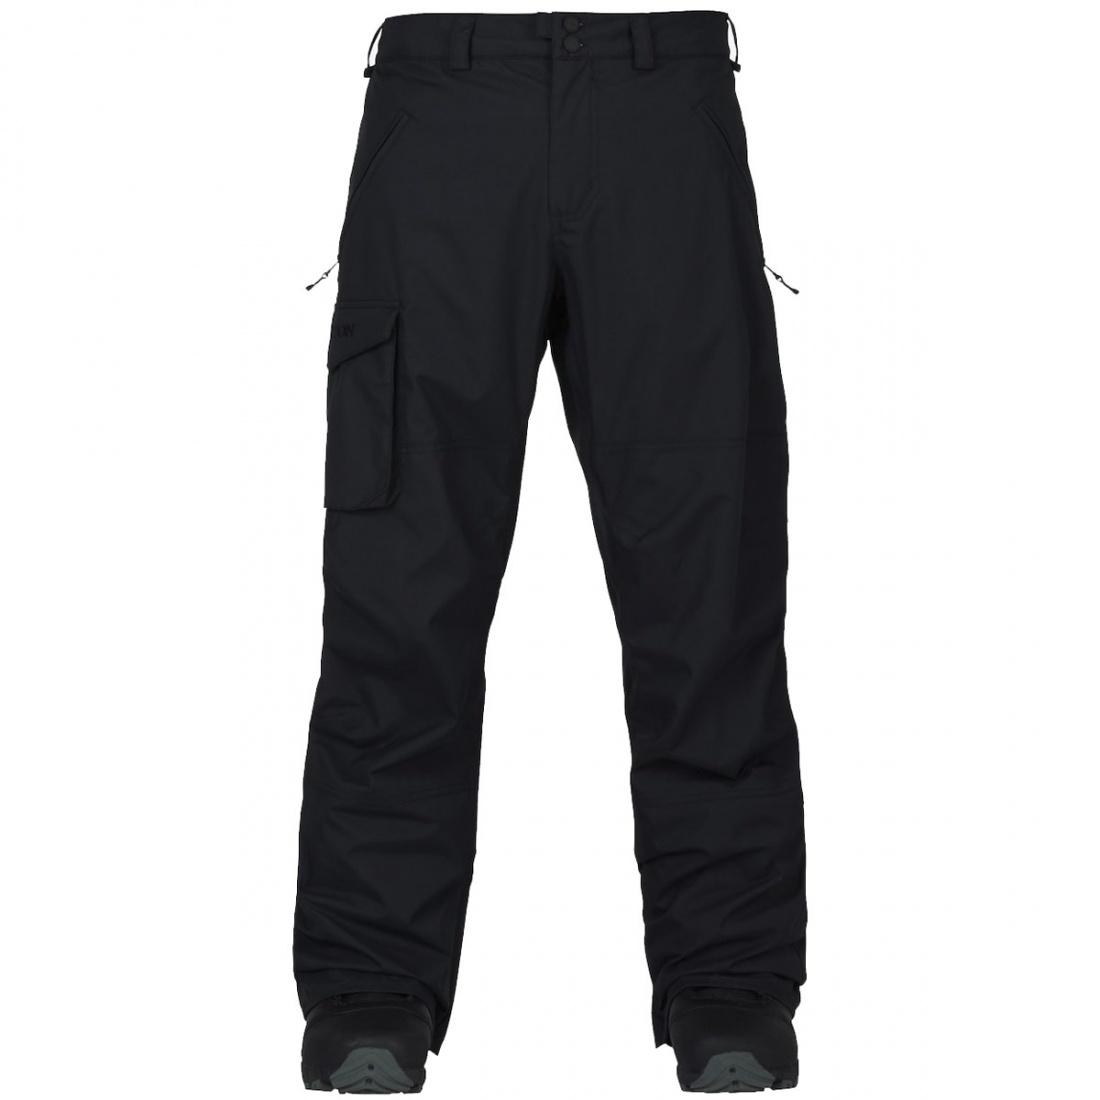 Burton Штаны для сноуборда Burton Insulated Covert Pant TRUE BLACK S burton термобелье burton midweight base layer pant true black fw18 xl